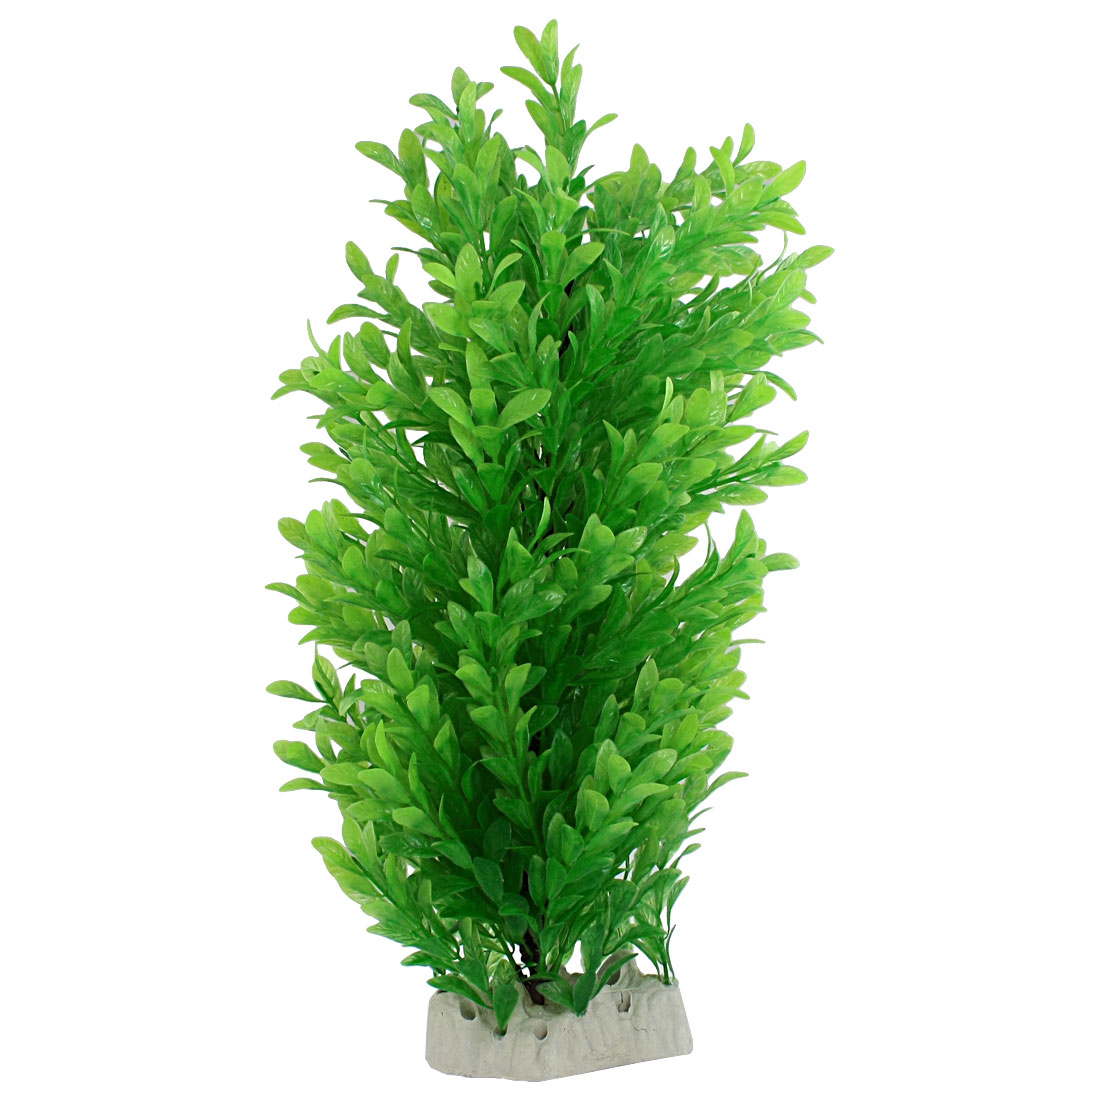 "Green 17.3"" High Artifical Plastic Aquatic Plants Aquarium Tank Ornament"